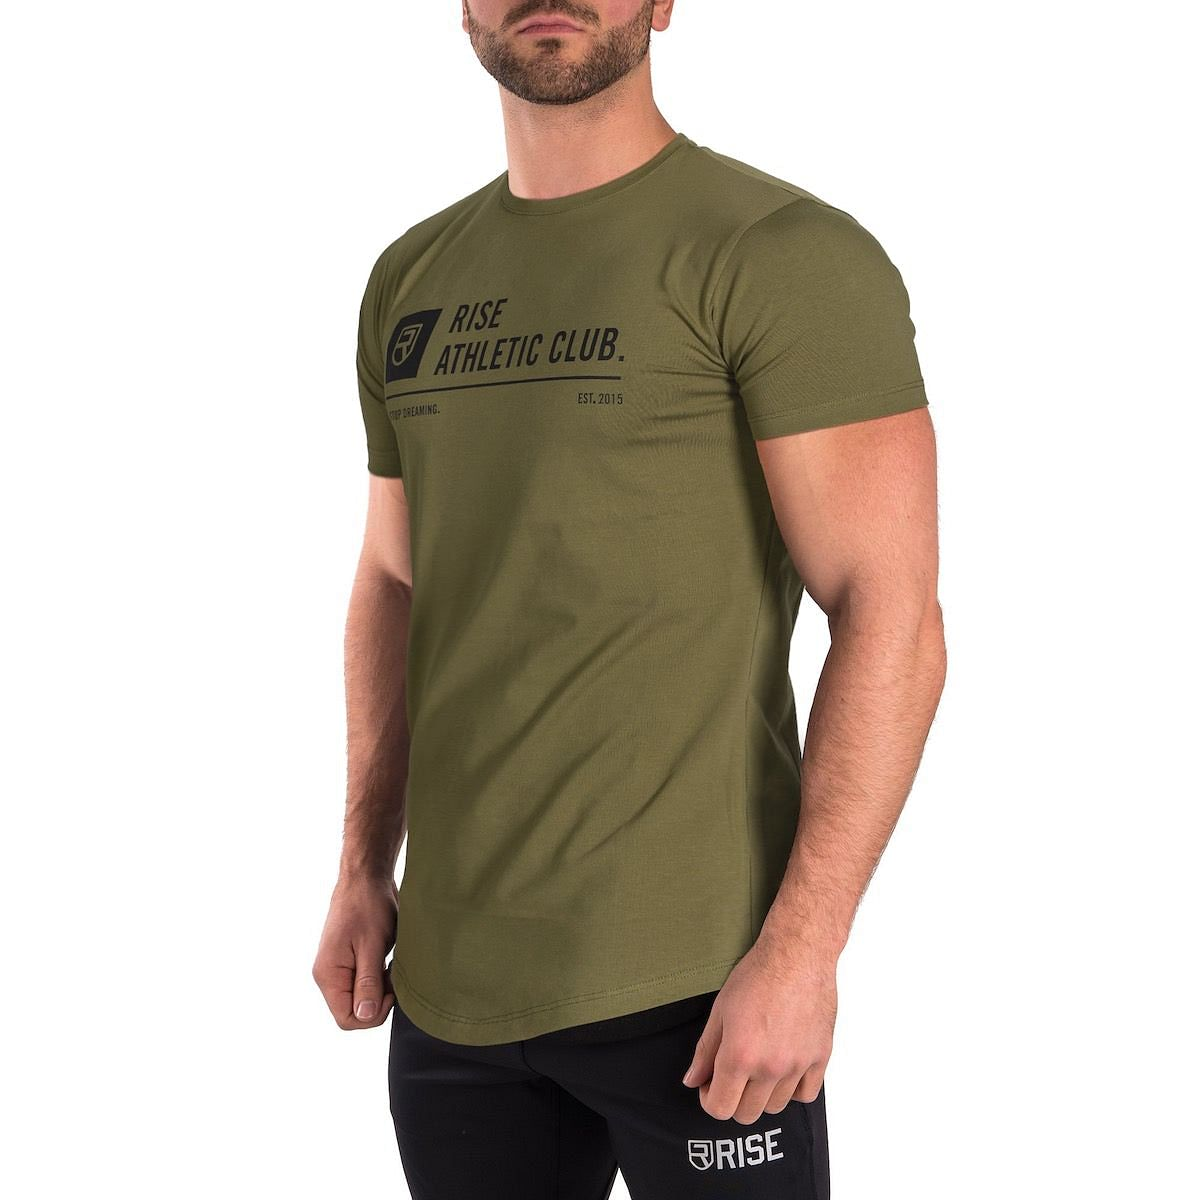 Athletic Club T-Shirt - Army Green